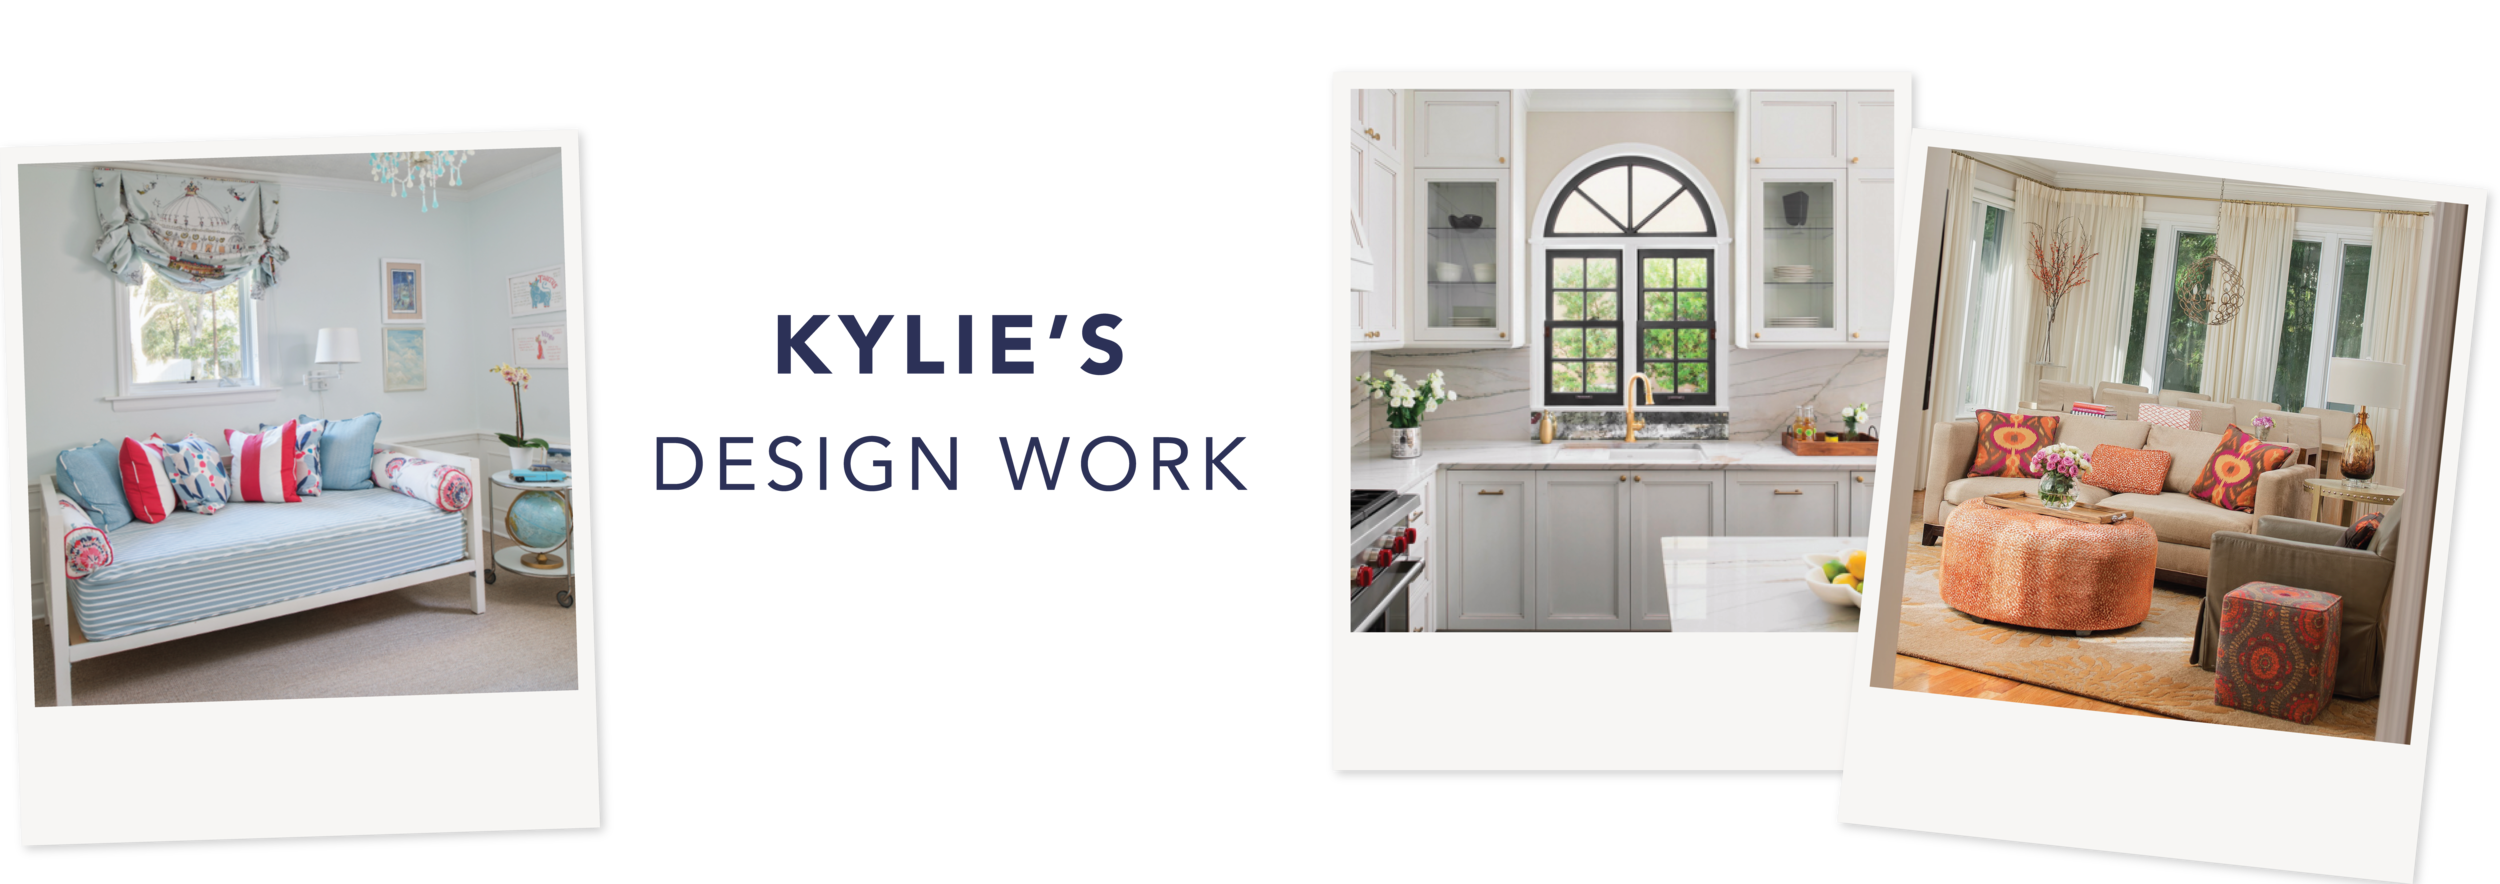 kylie ponton interior design savvy giving by design tampa florida room makeovers childhood illness injury